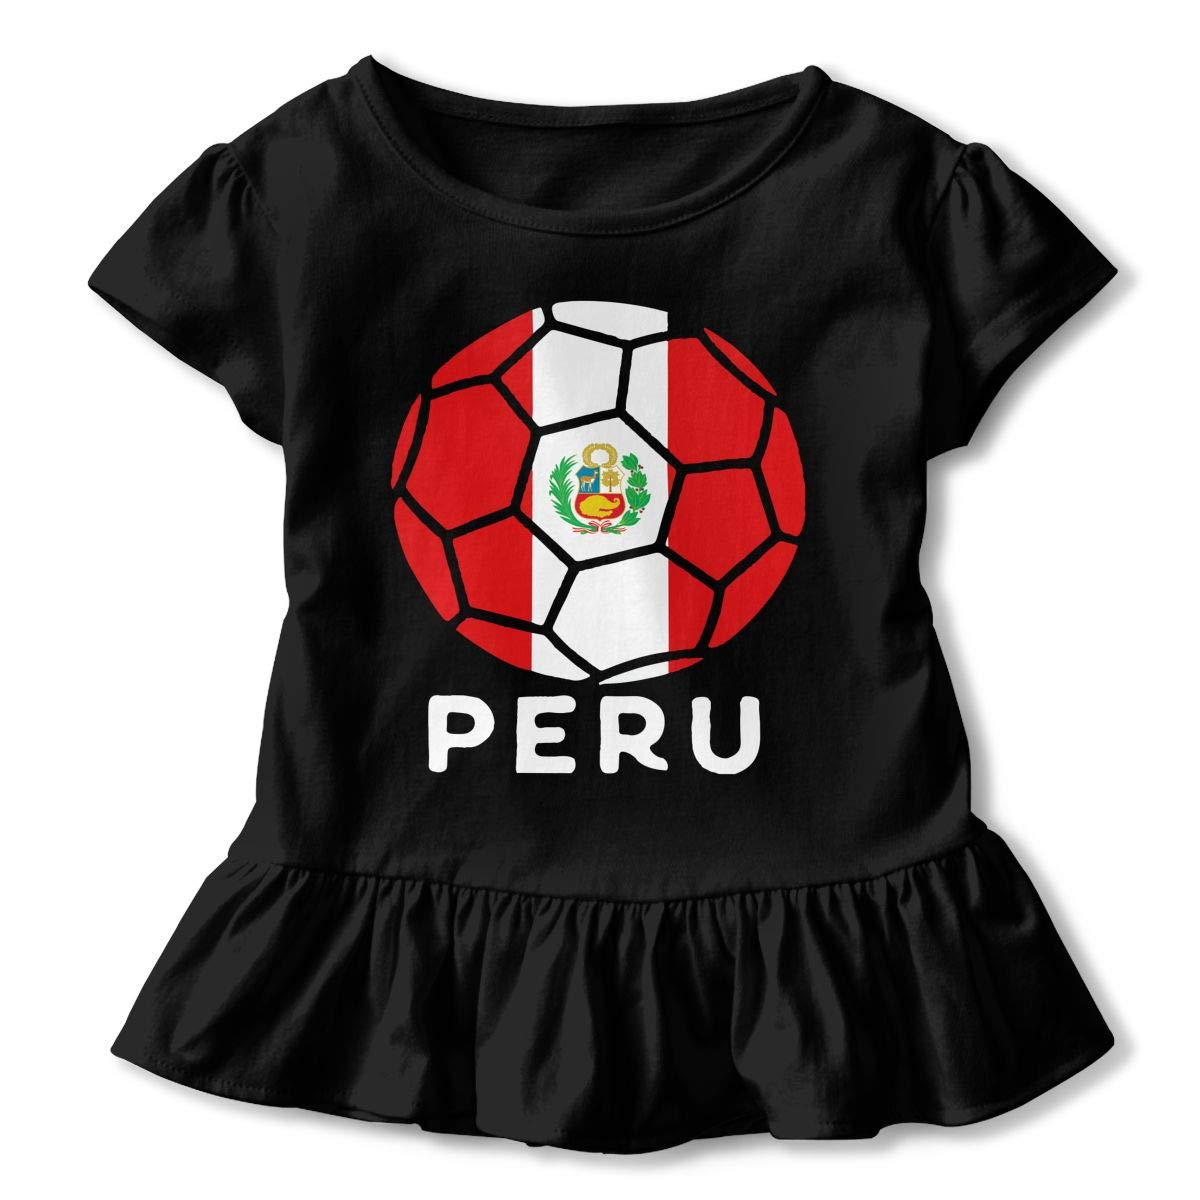 HYBDX9T Toddler Baby Girl Peru Flag Football Funny Short Sleeve Cotton T Shirts Basic Tops Tee Clothes